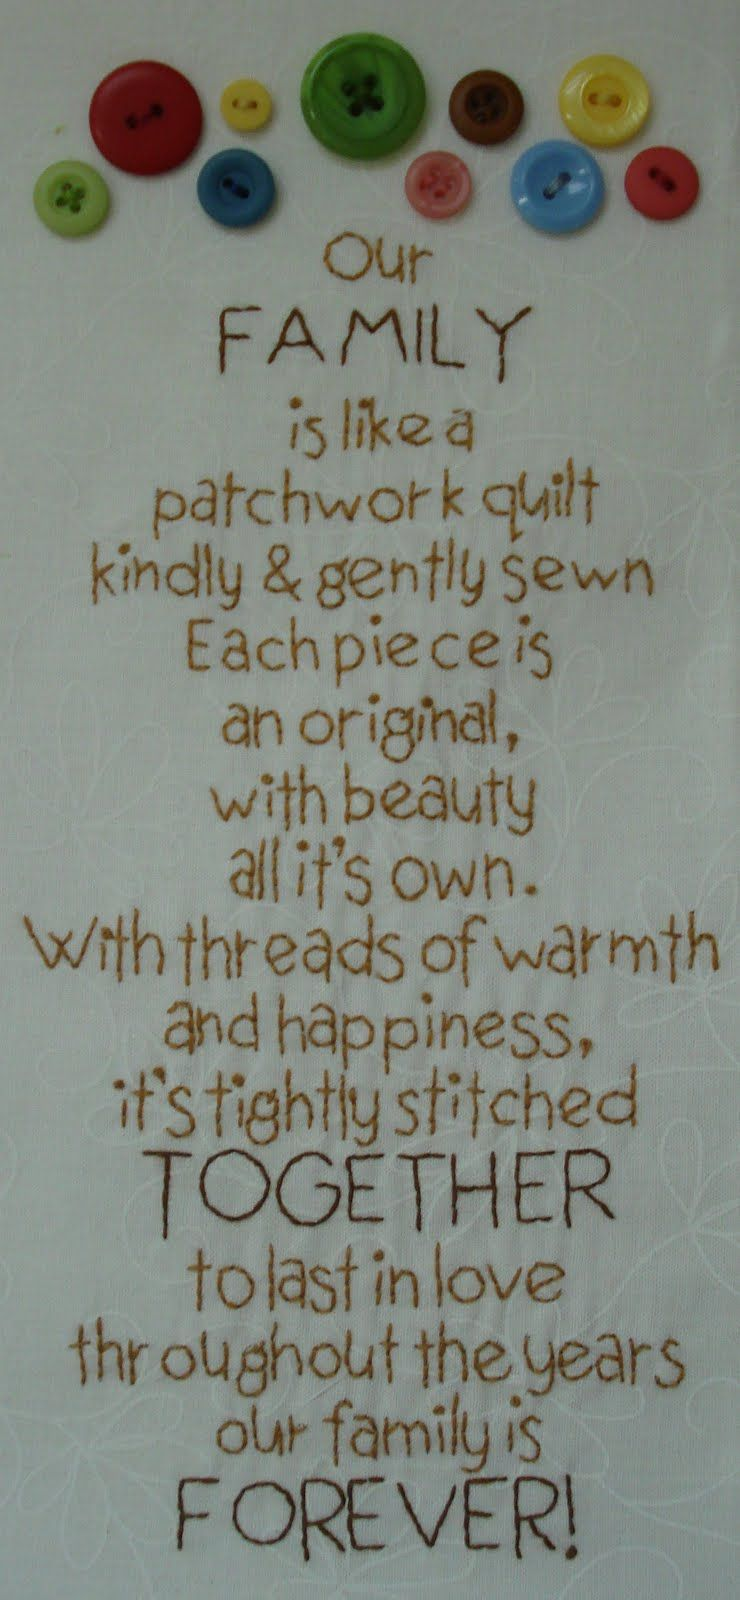 Our Family is like a patchwork quilt - From Lori Holt's Family ... : quilting poem - Adamdwight.com